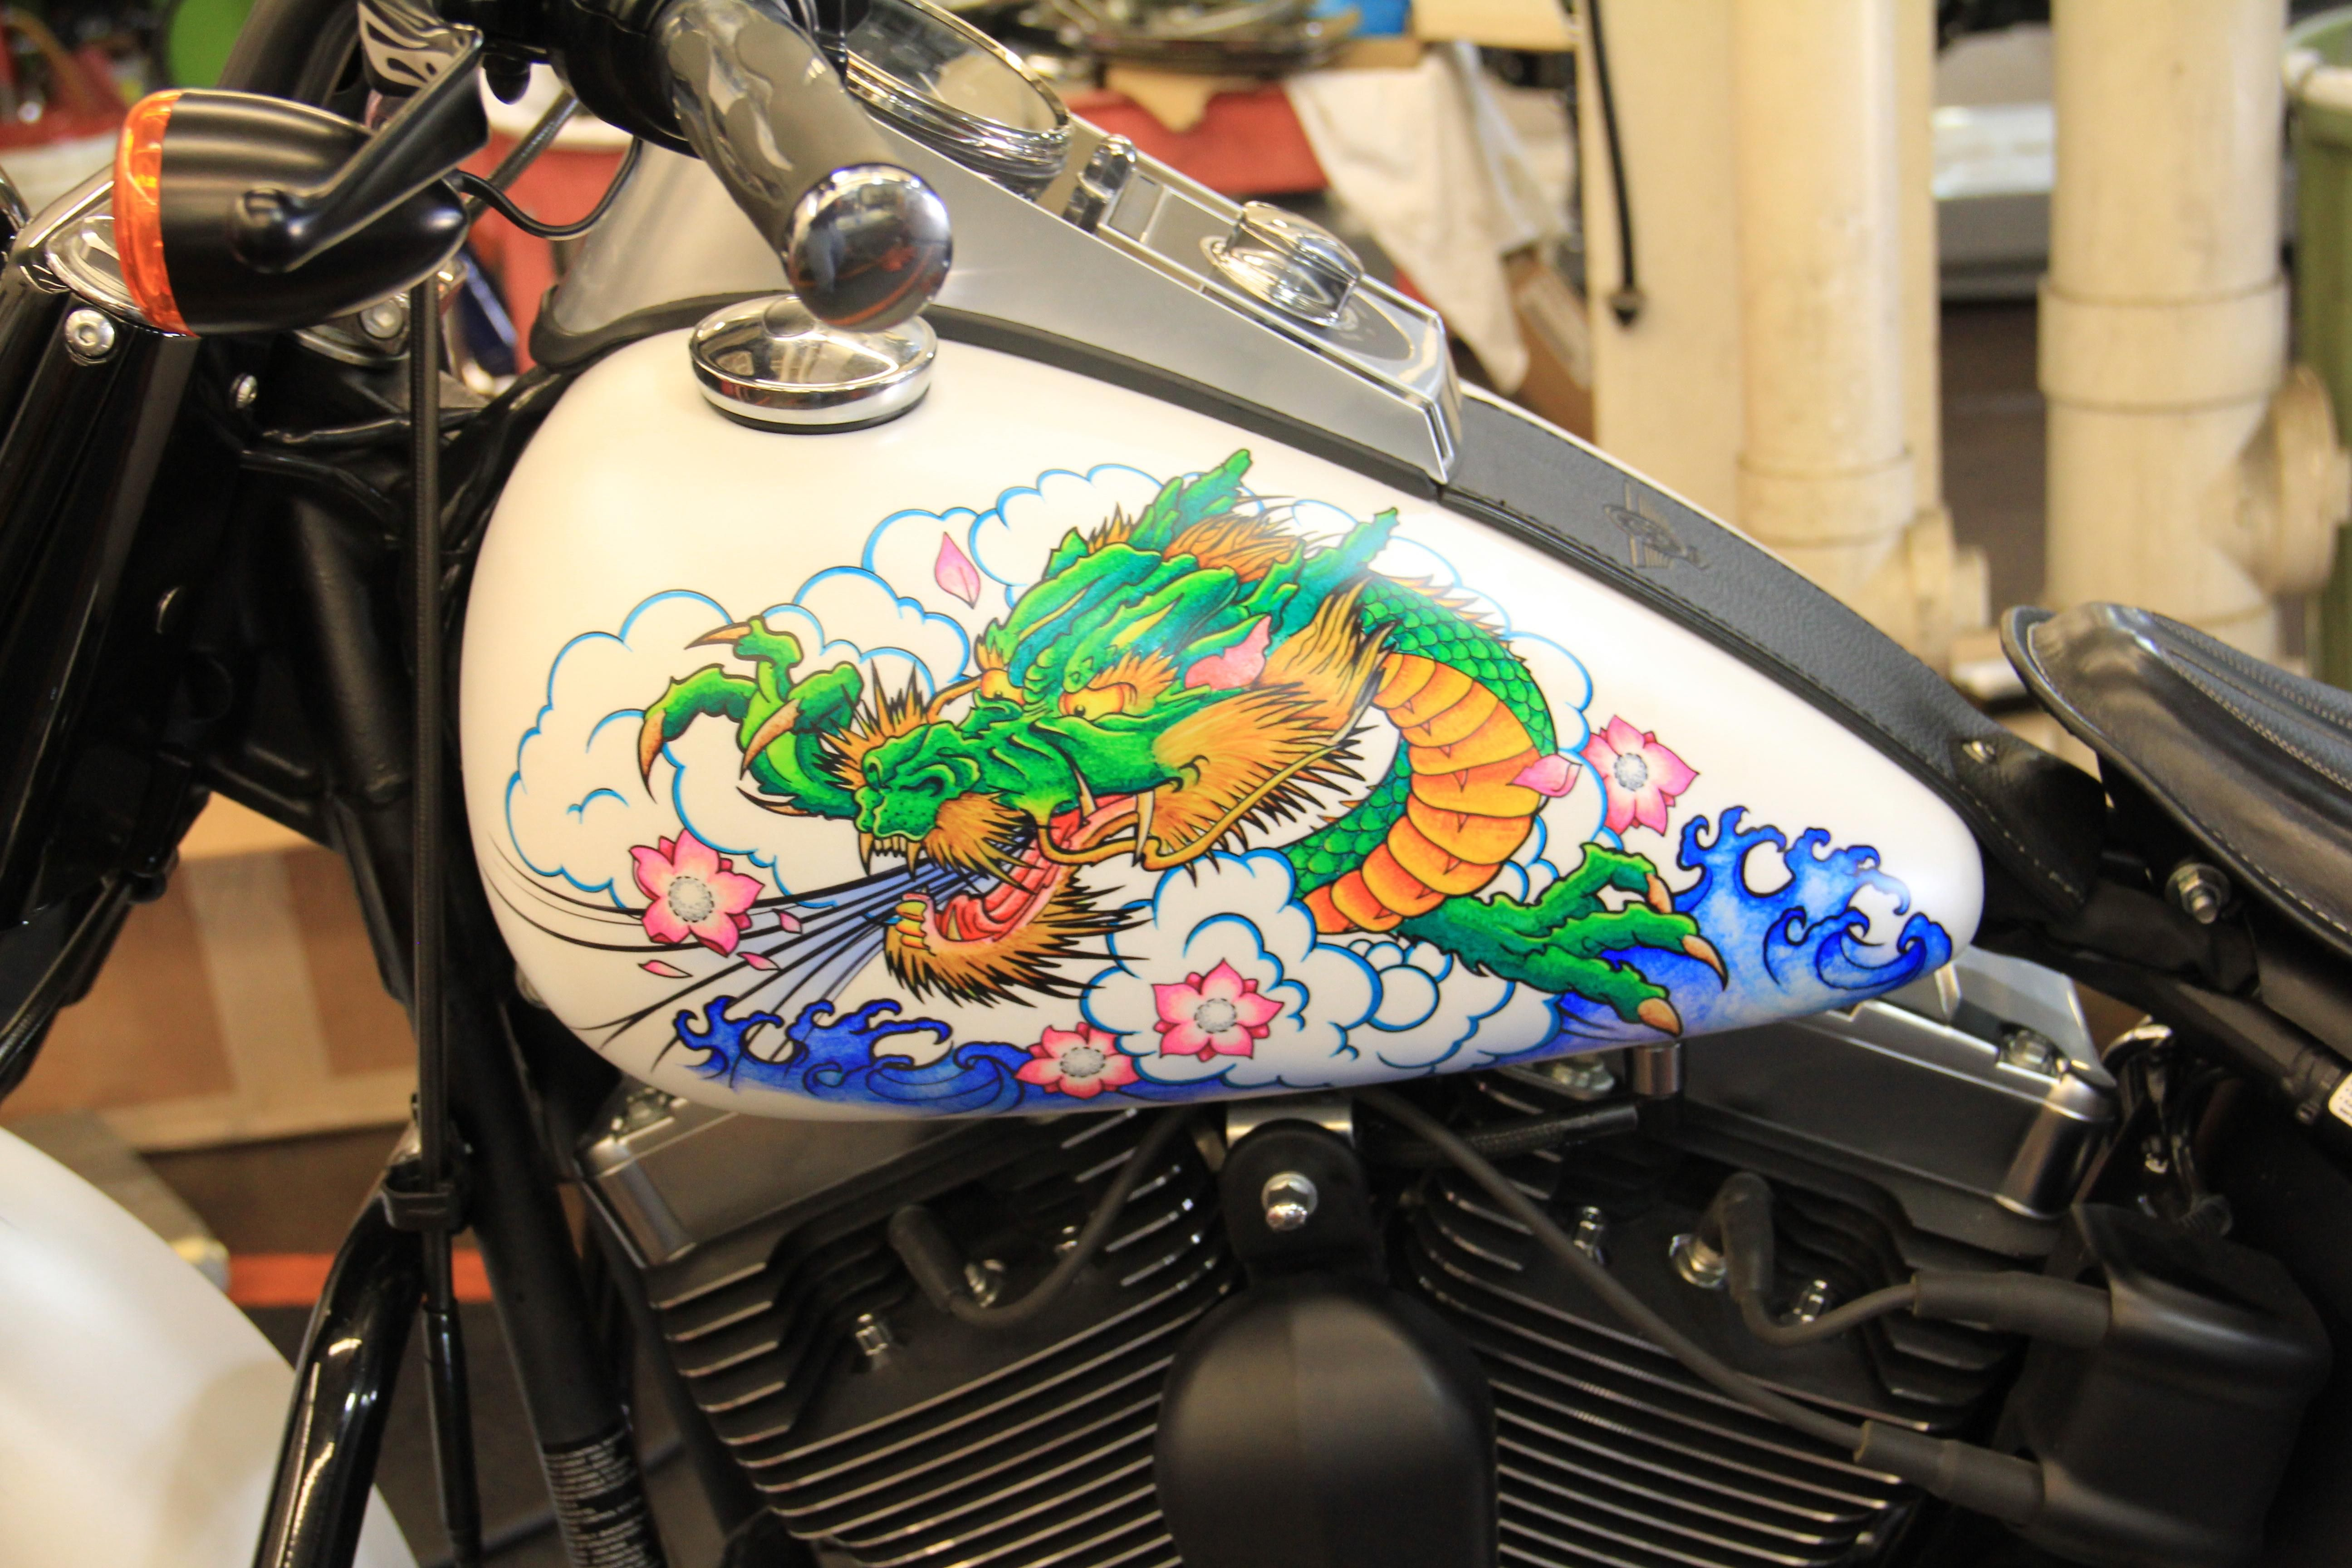 Design On Motorcycle Using Sharpie Markers He Doesn T Give Away All His Secrets But To Protect This Is What He Does Once You Completed The Finished De Posca